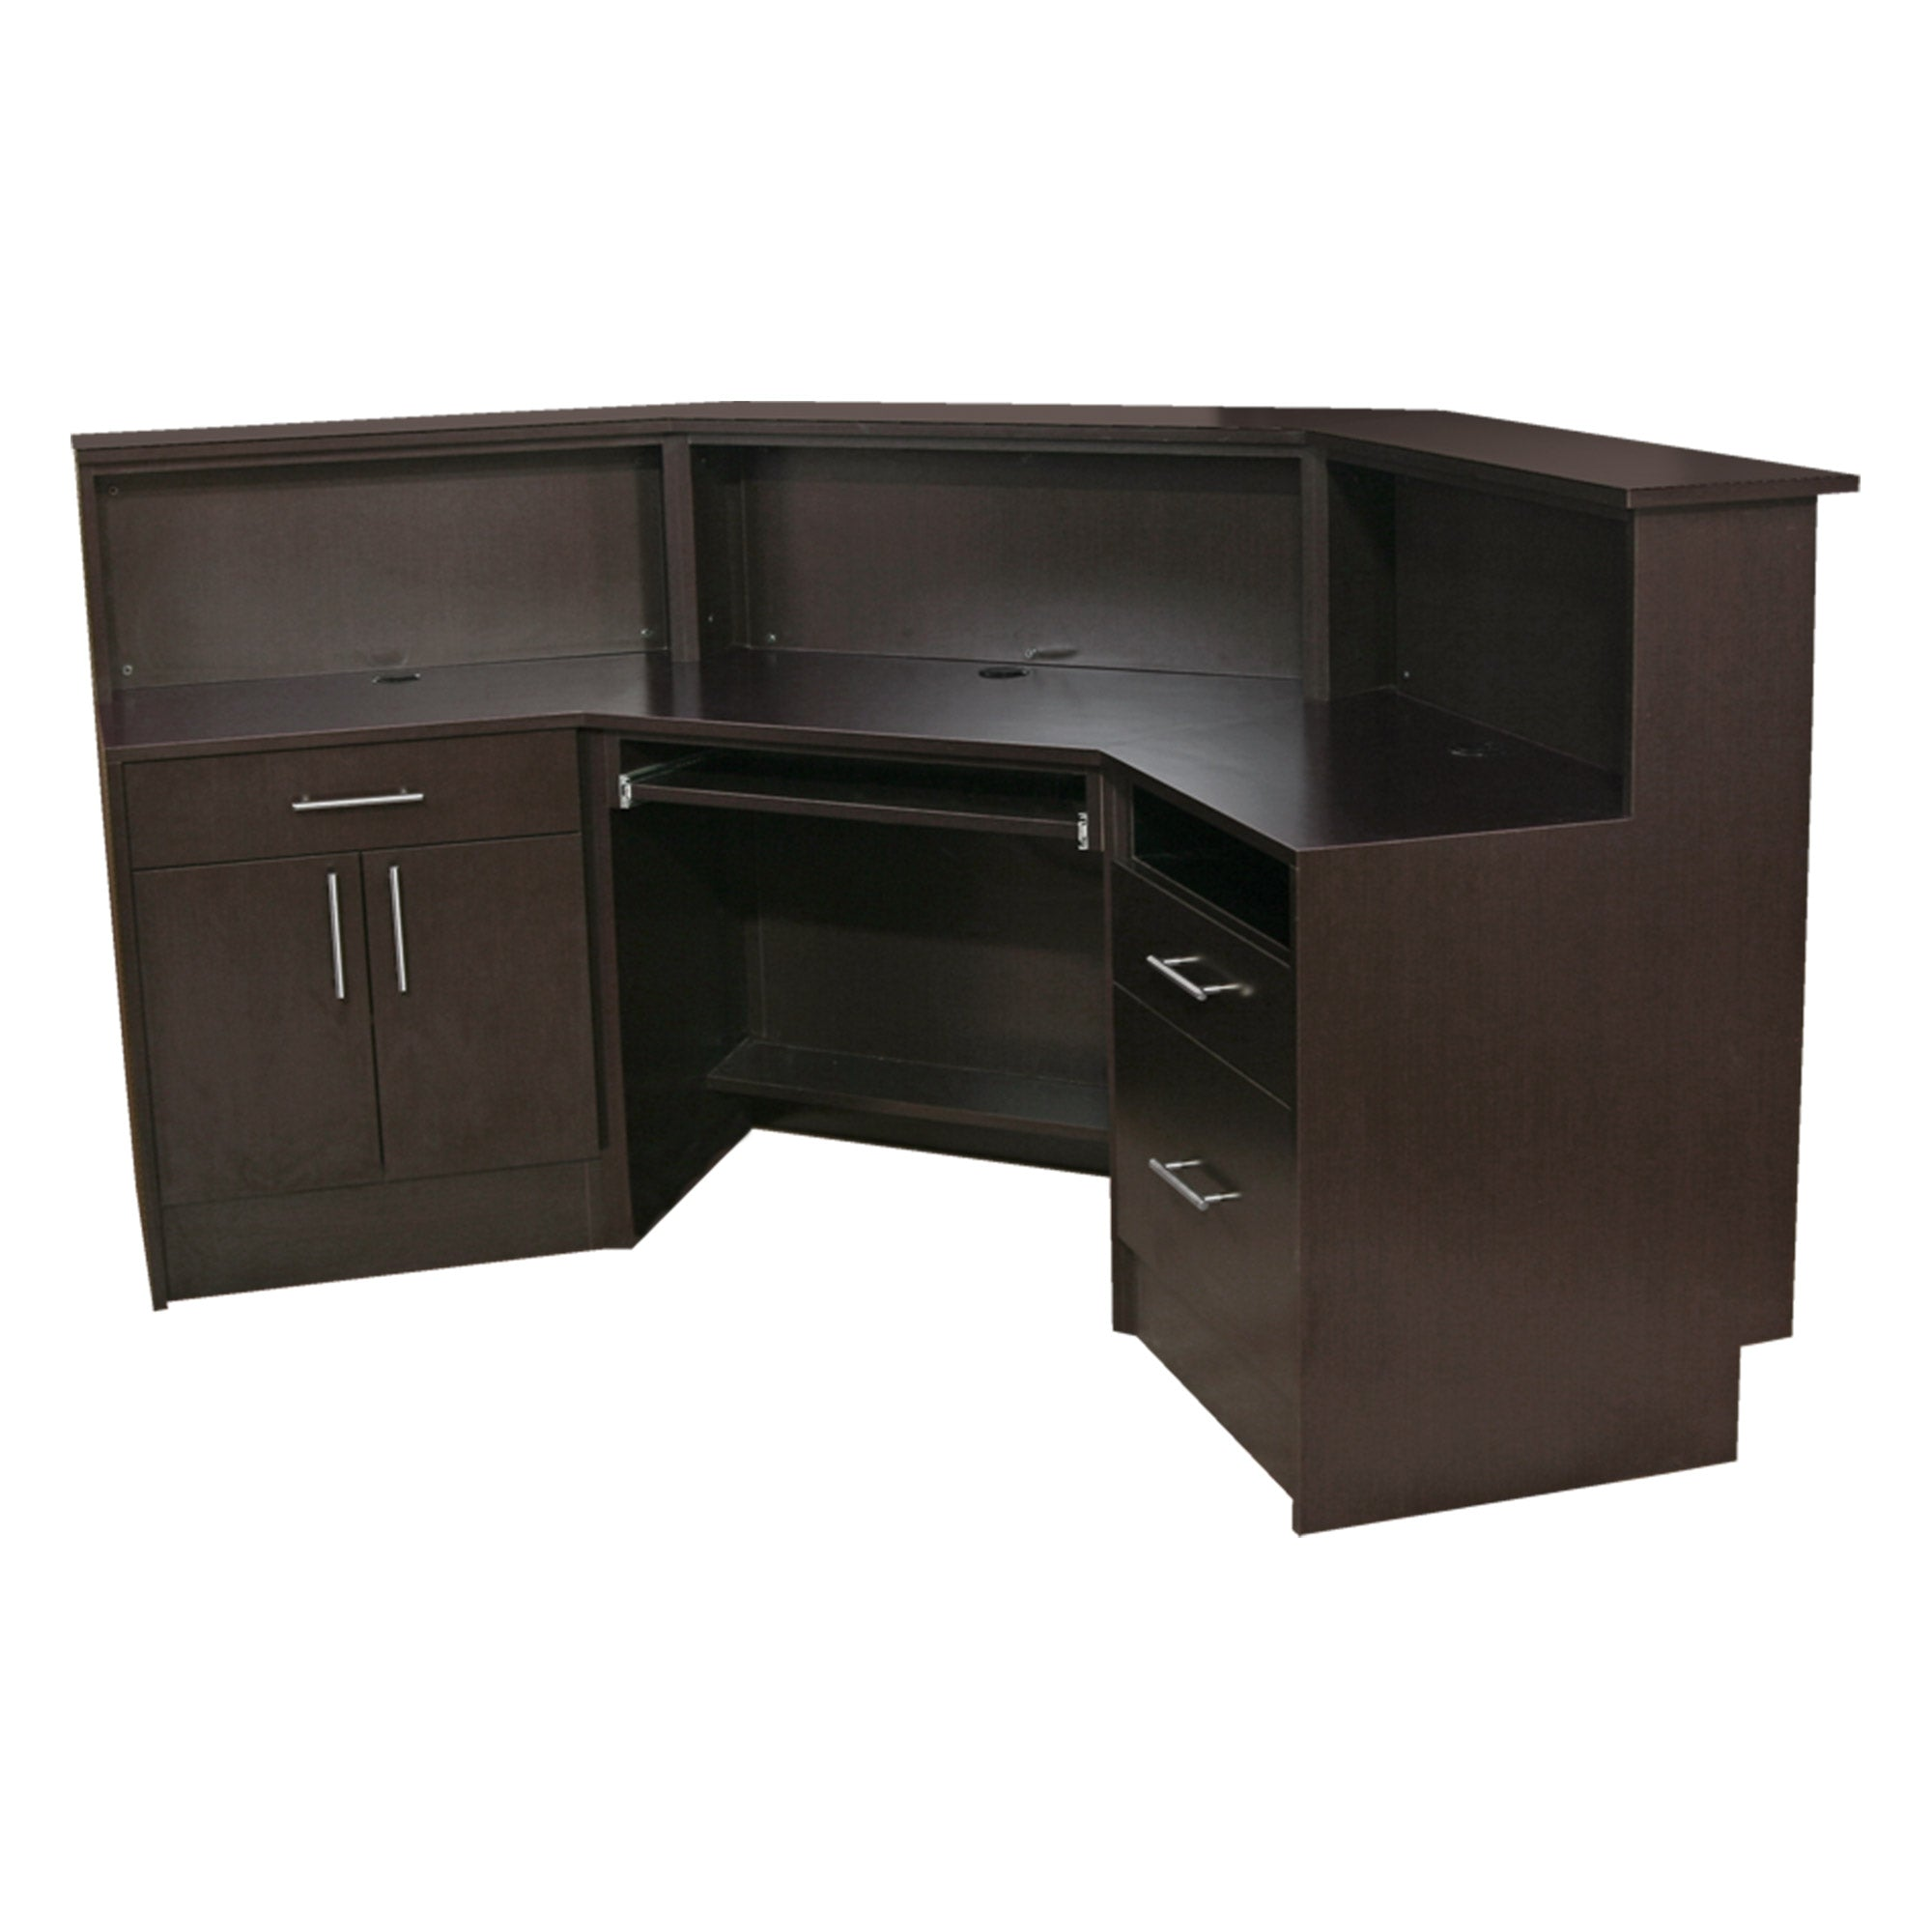 Studio J Reception Desk - Collins